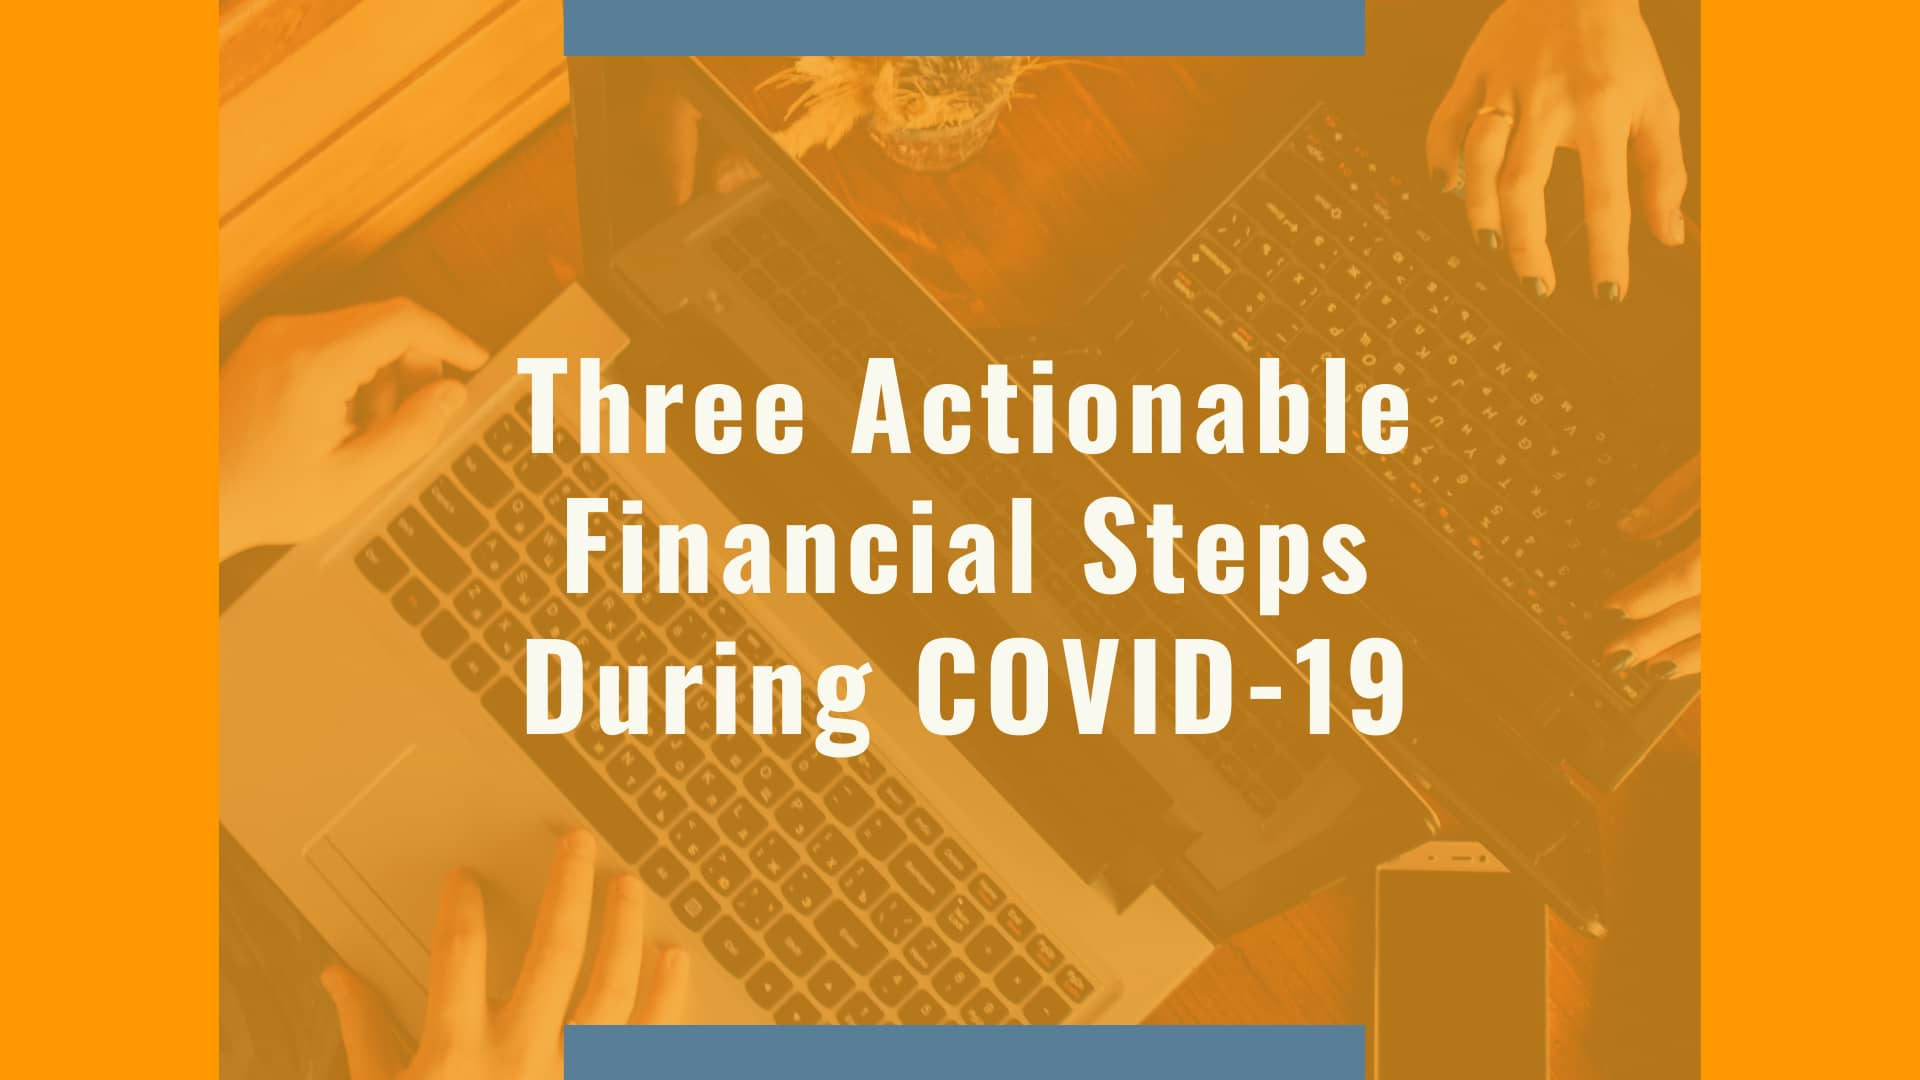 Three Actionable Financial Steps During Covid